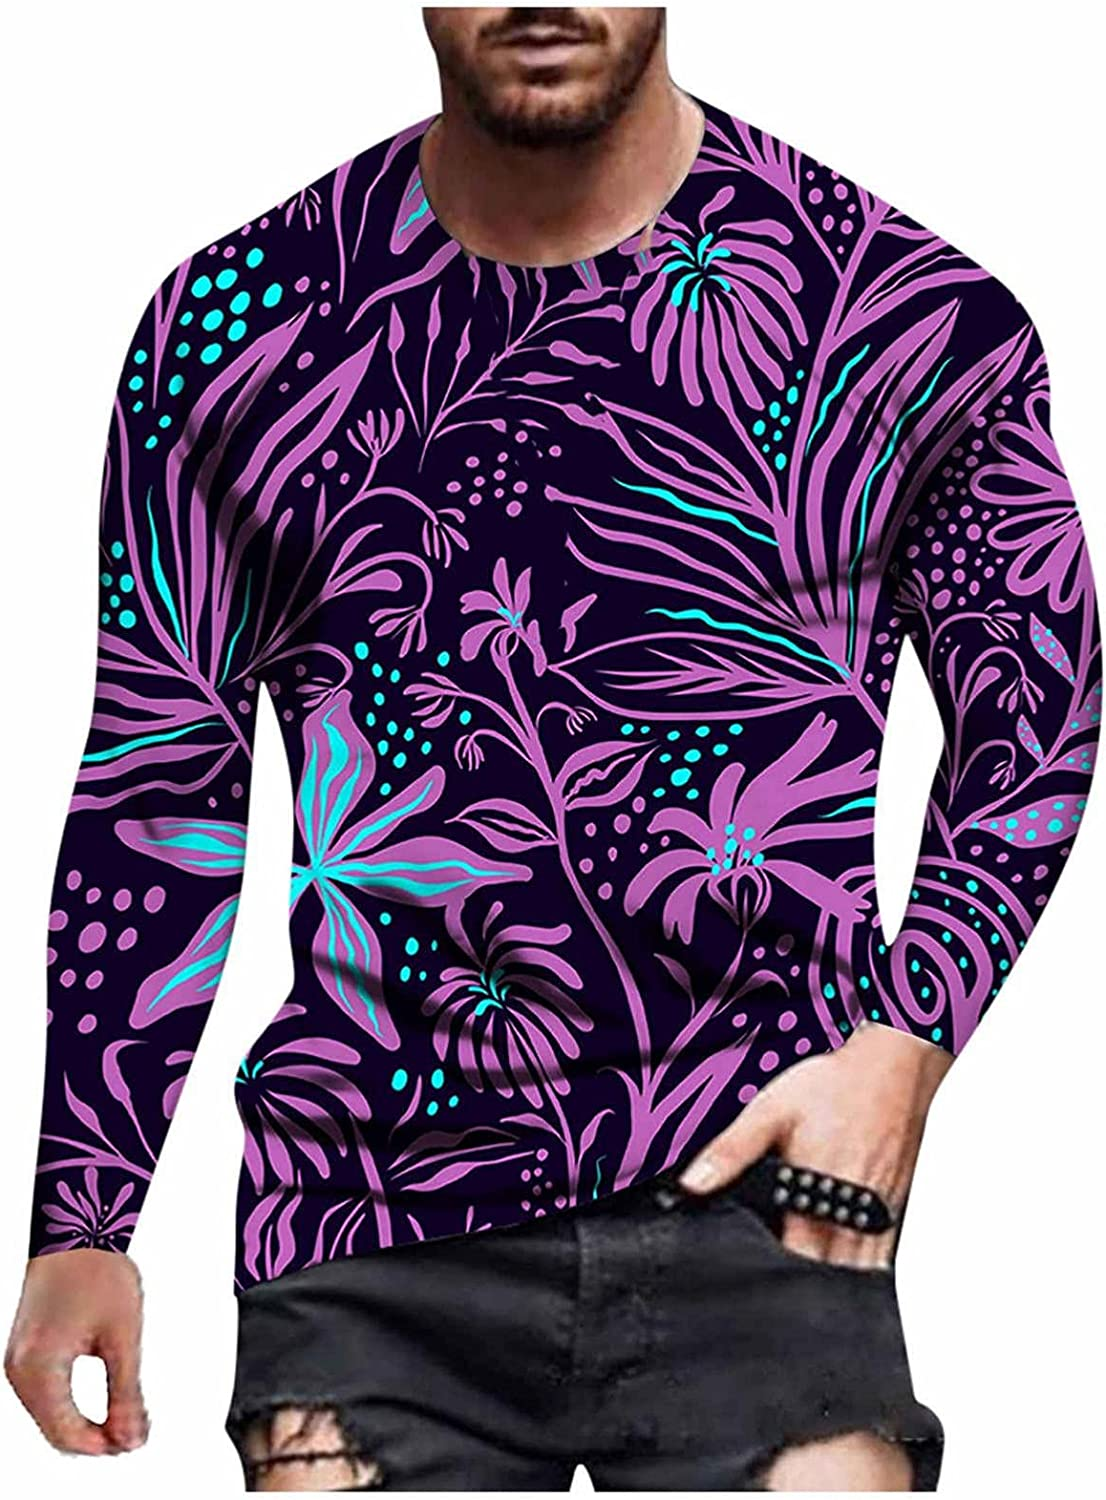 WUAI-Men Casual Long Sleeve Cotton Shirts Crewneck Funny 3D Printed Slim Fit Graphic Tee Outdoor Athletic Muscle Tops